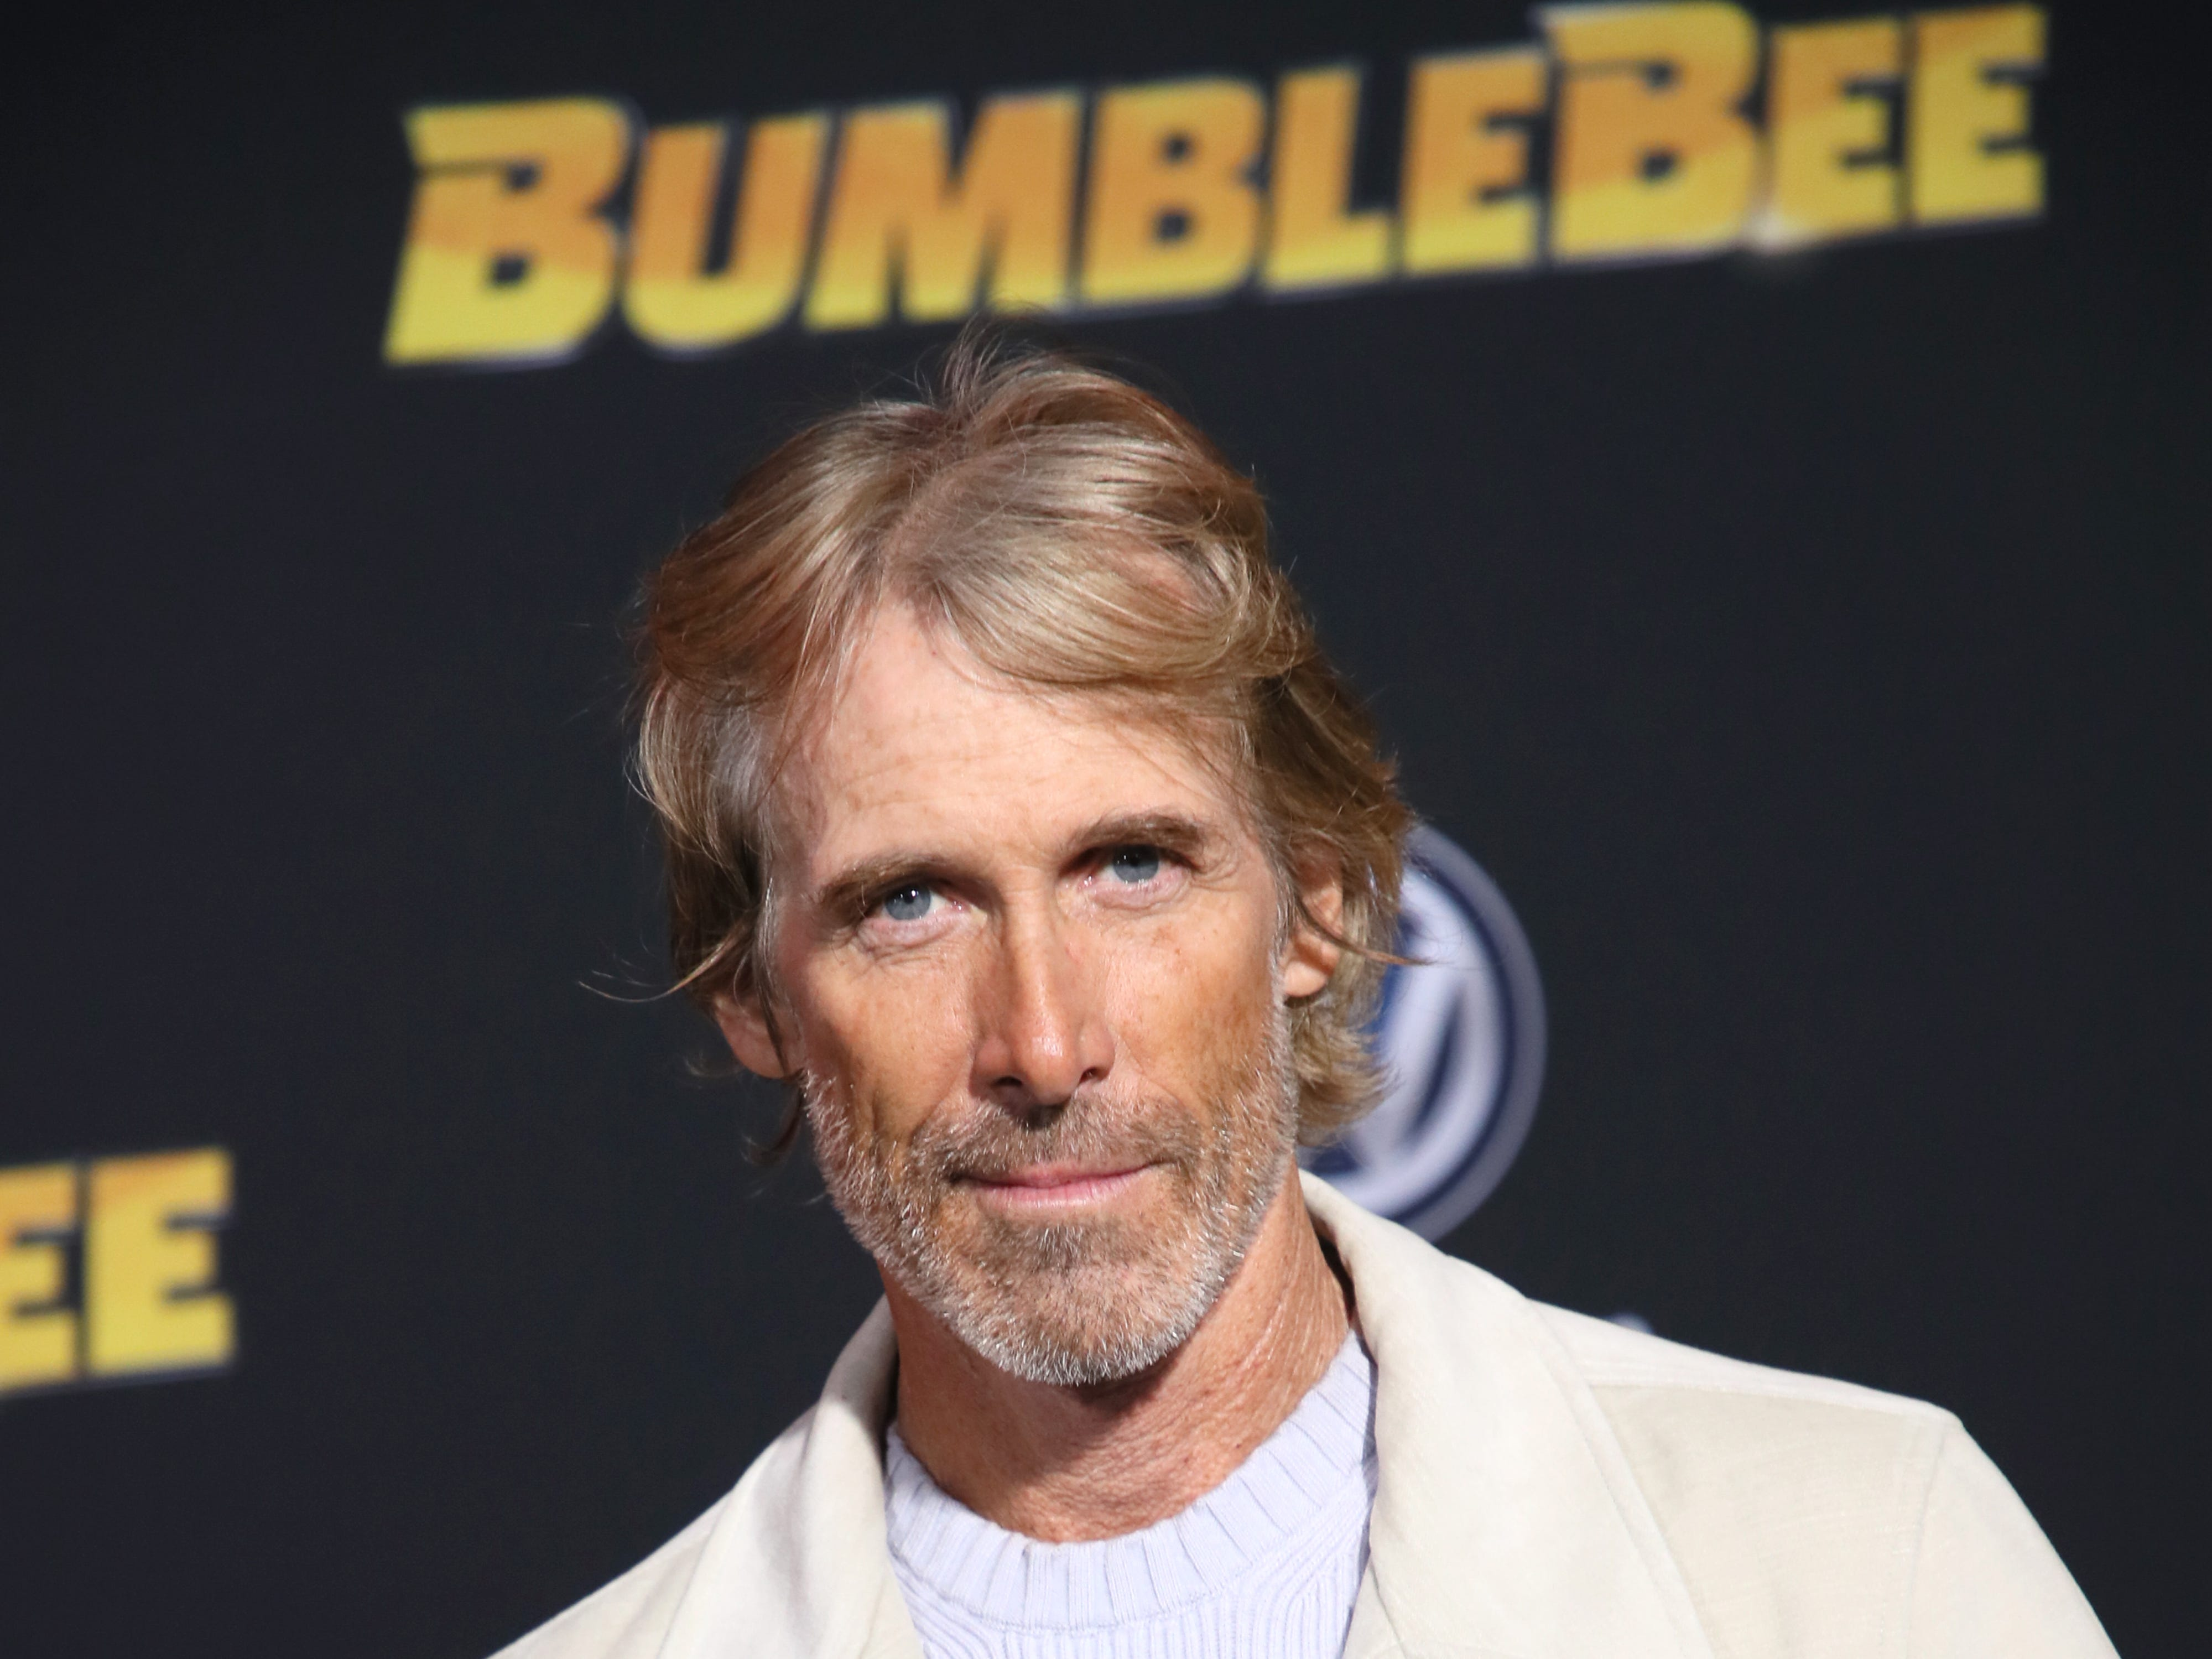 "HOLLYWOOD, CALIFORNIA - DECEMBER 09: Michael Bay attends the premiere of Paramount Pictures' ""Bumblebee"" at TCL Chinese Theatre on December 09, 2018 in Hollywood, California. (Photo by David Livingston/Getty Images) ORG XMIT: 775261600 ORIG FILE ID: 1079971106"